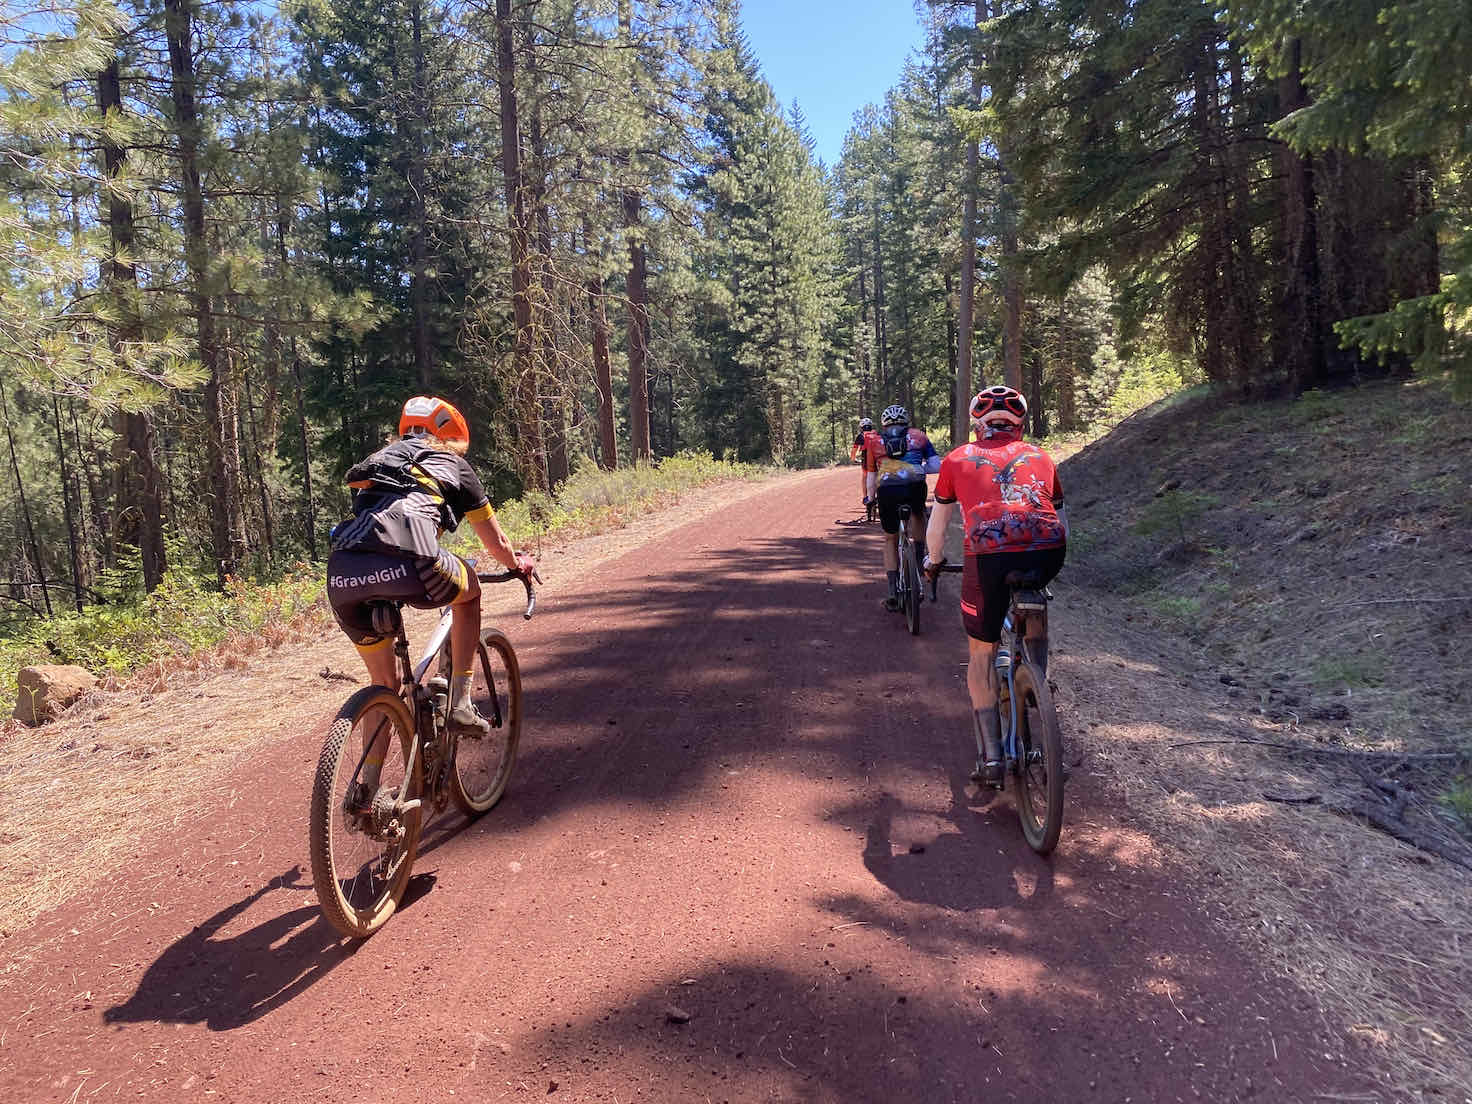 A group of gravel cyclists climbing up the red cinder road on the north side of Black Butte.